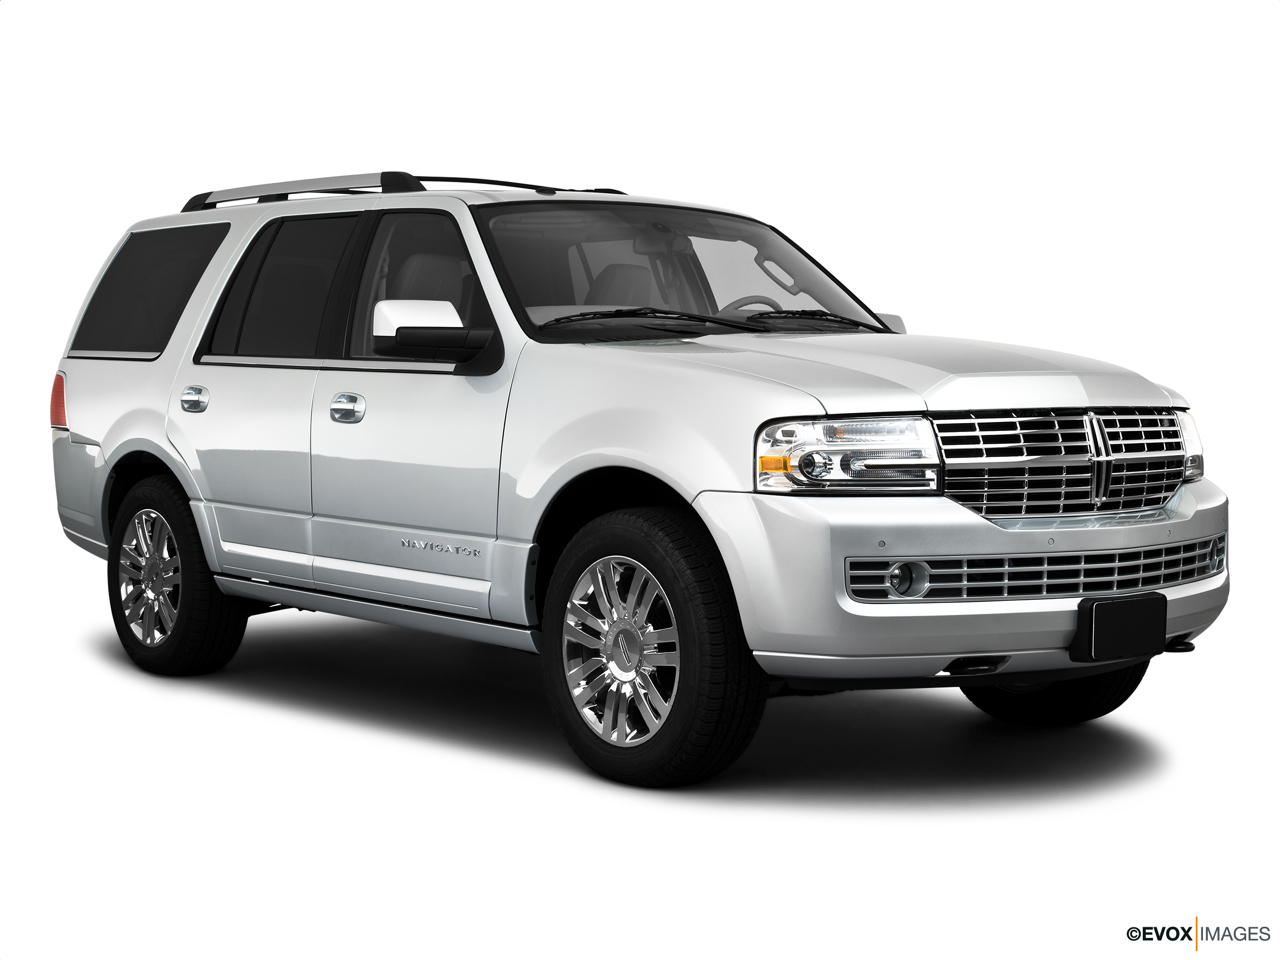 2010 Lincoln Navigator Base 158 - no description